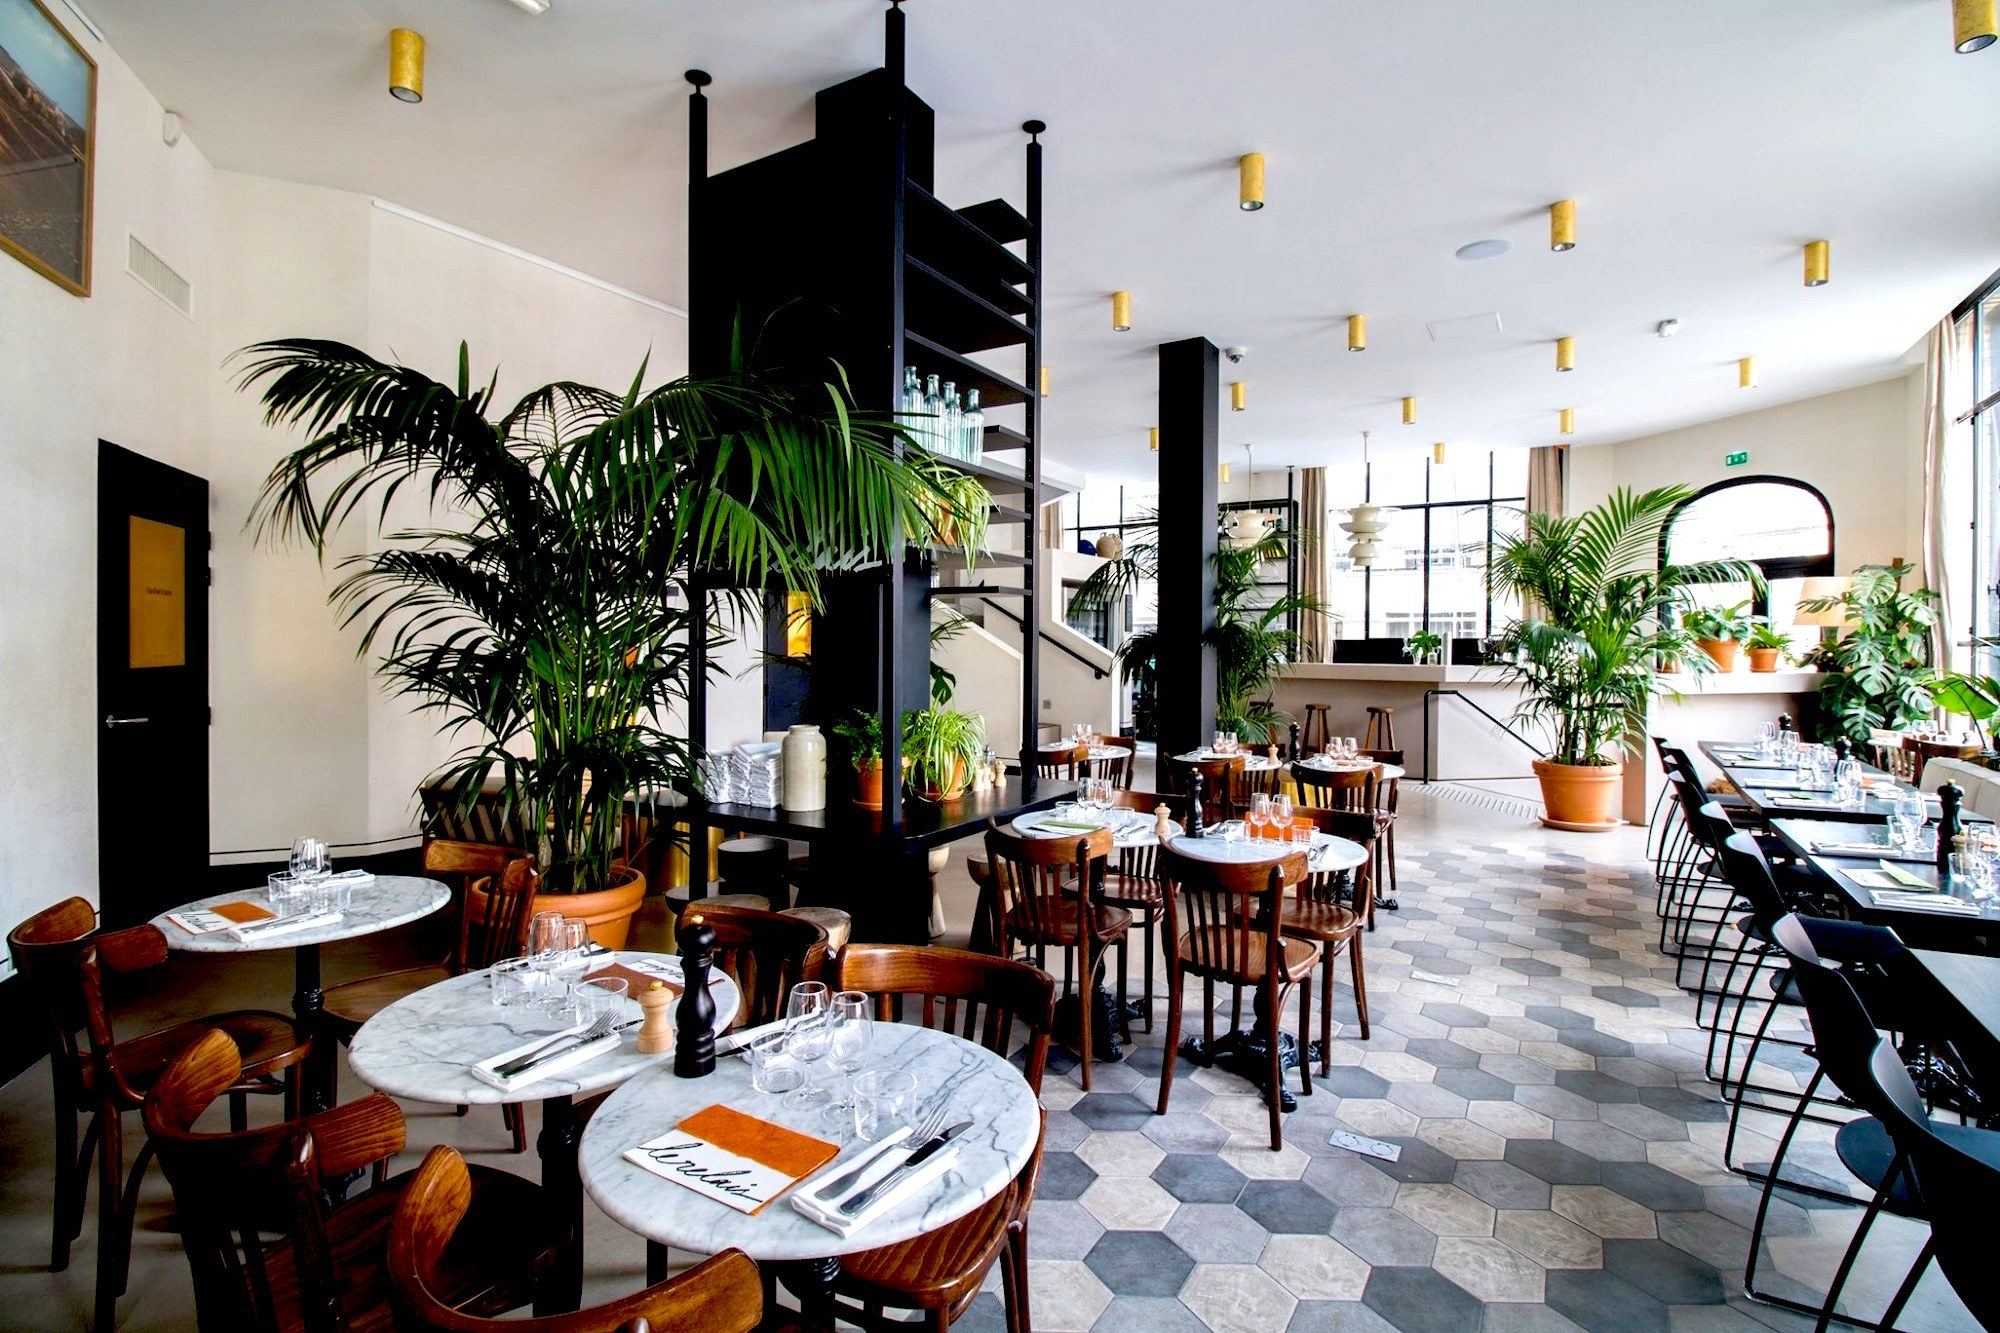 The main dining space at Le Relais restaurant in Paris, a light and bright space with potted plants and tiled floors.